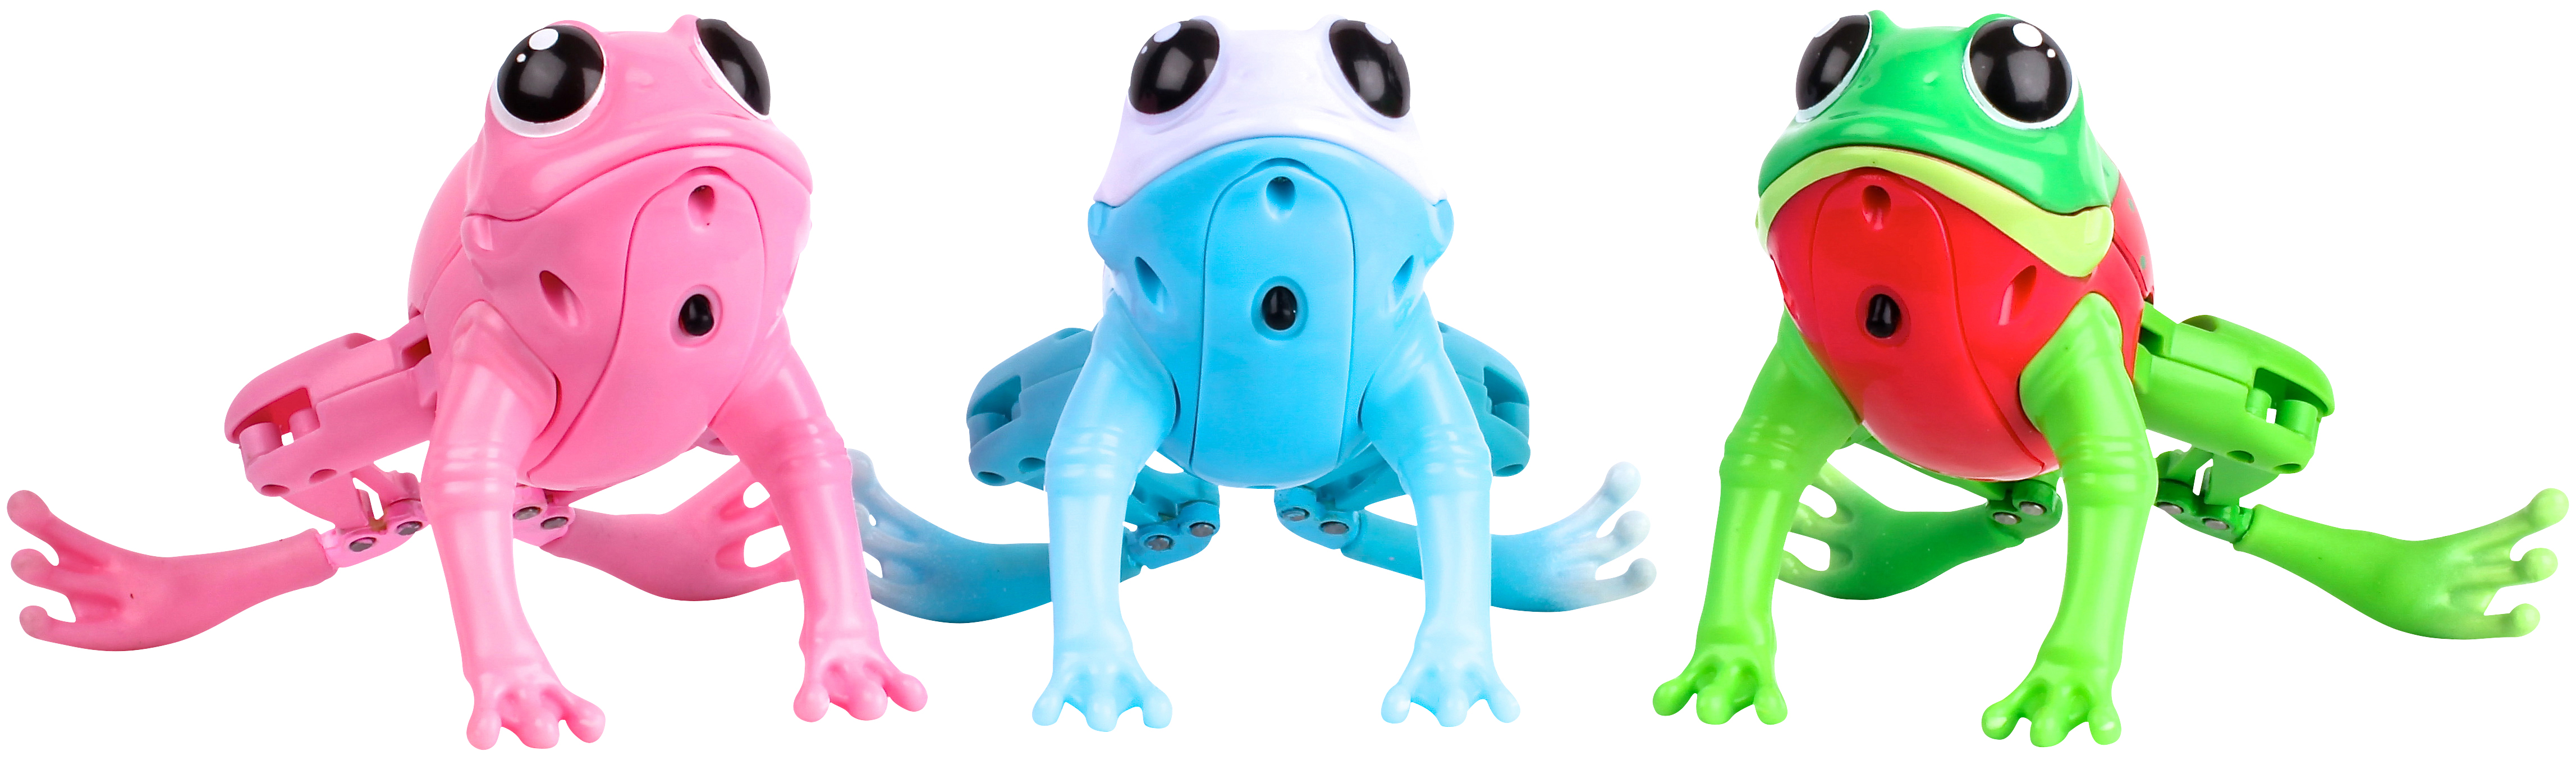 Moose Toys Recalls Toy Frogs Due to Chemical and Injury Hazards